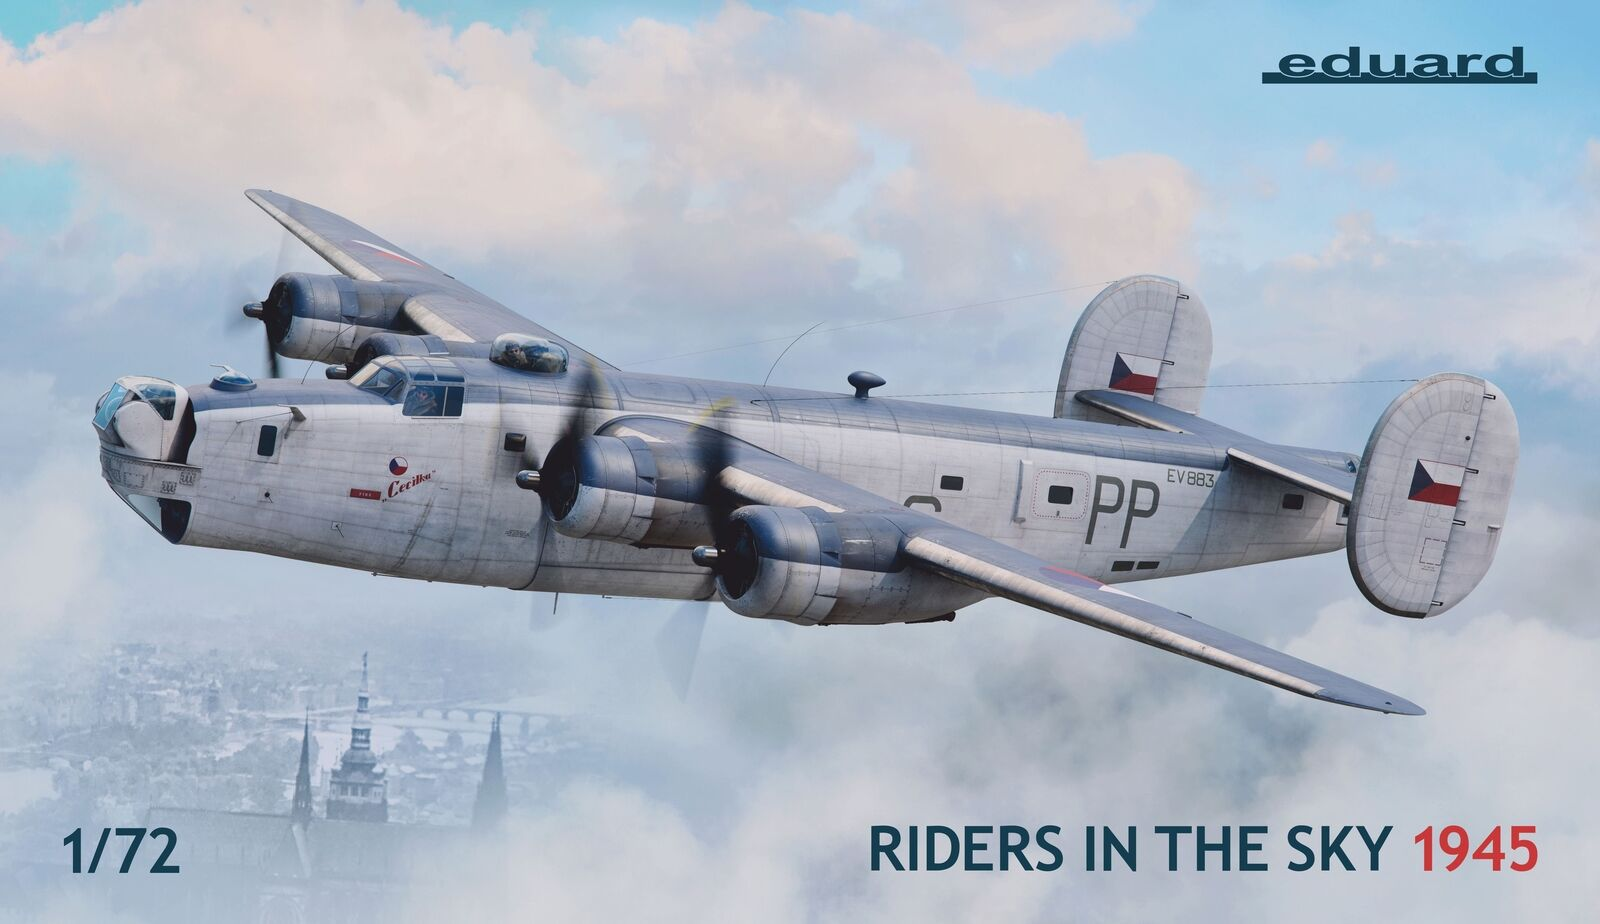 Eduard 1 72 Riders in the Sky 1945 Limited Edition K2123